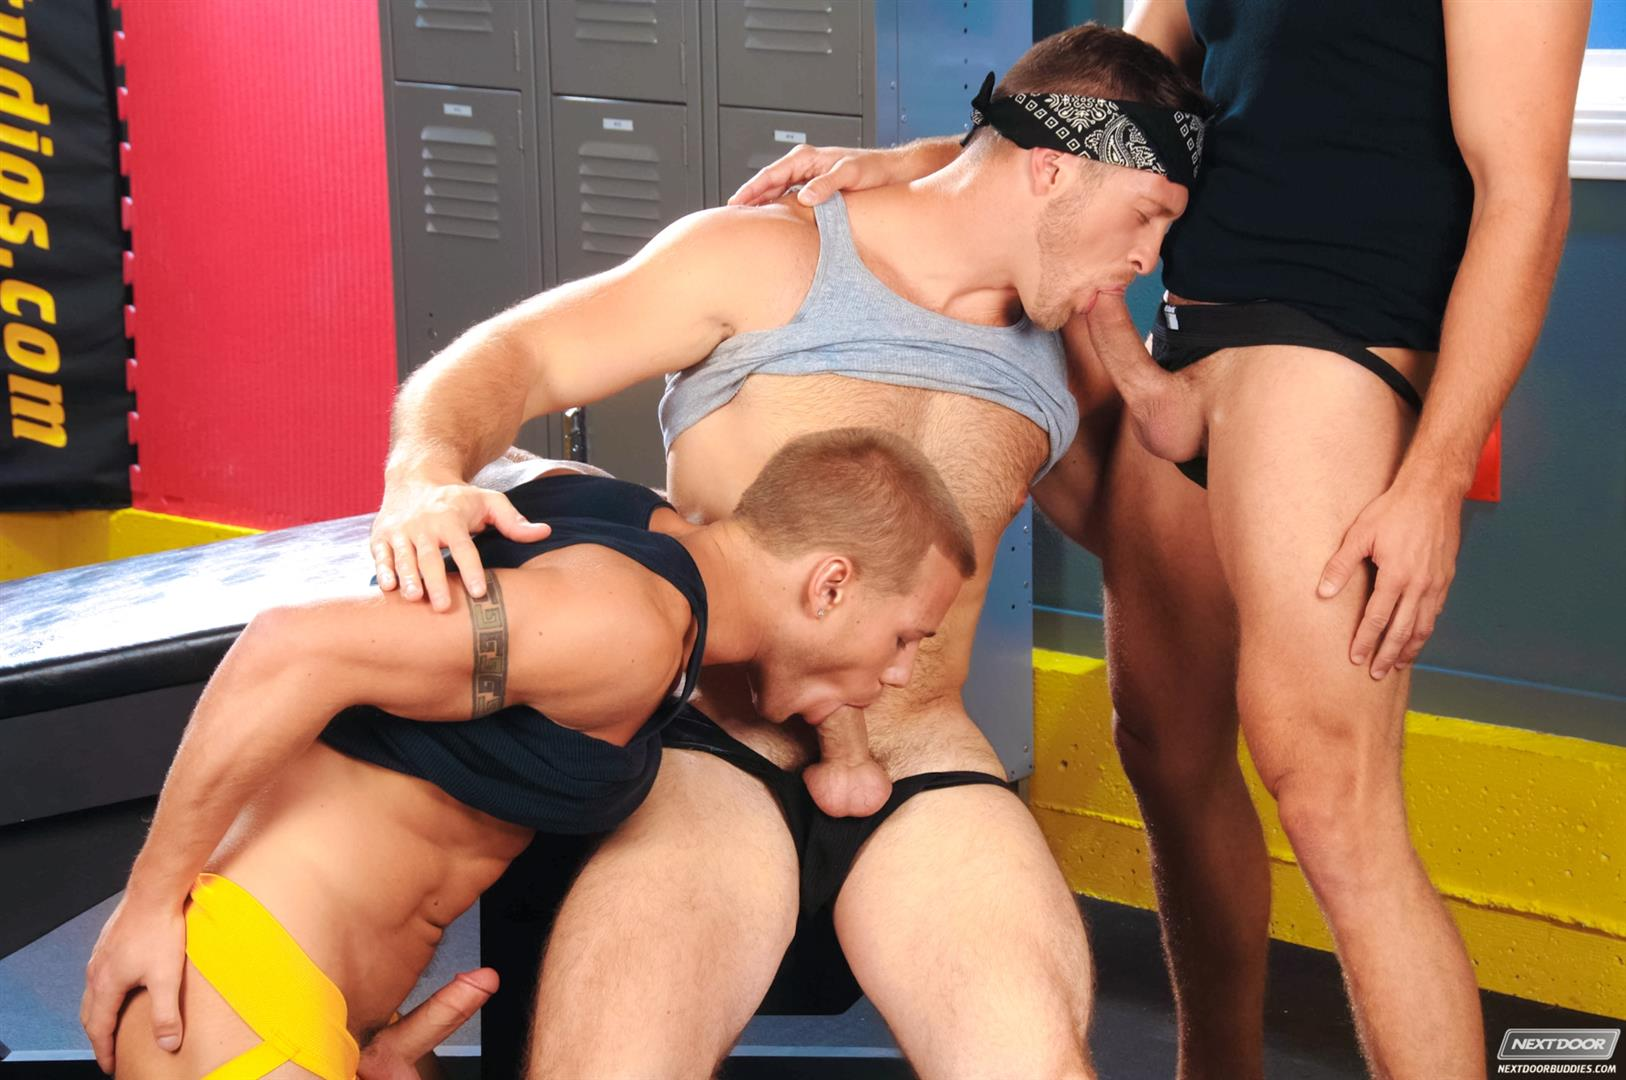 Next Door Buddies Brandon Lewis Paul Wagner Brody Wilder Hung Jocks Fucking In The Locker Room Amateur Gay Porn 04 Muscle Jocks Tag Teaming A Hot Muscle Ass In The Gym Locker Room